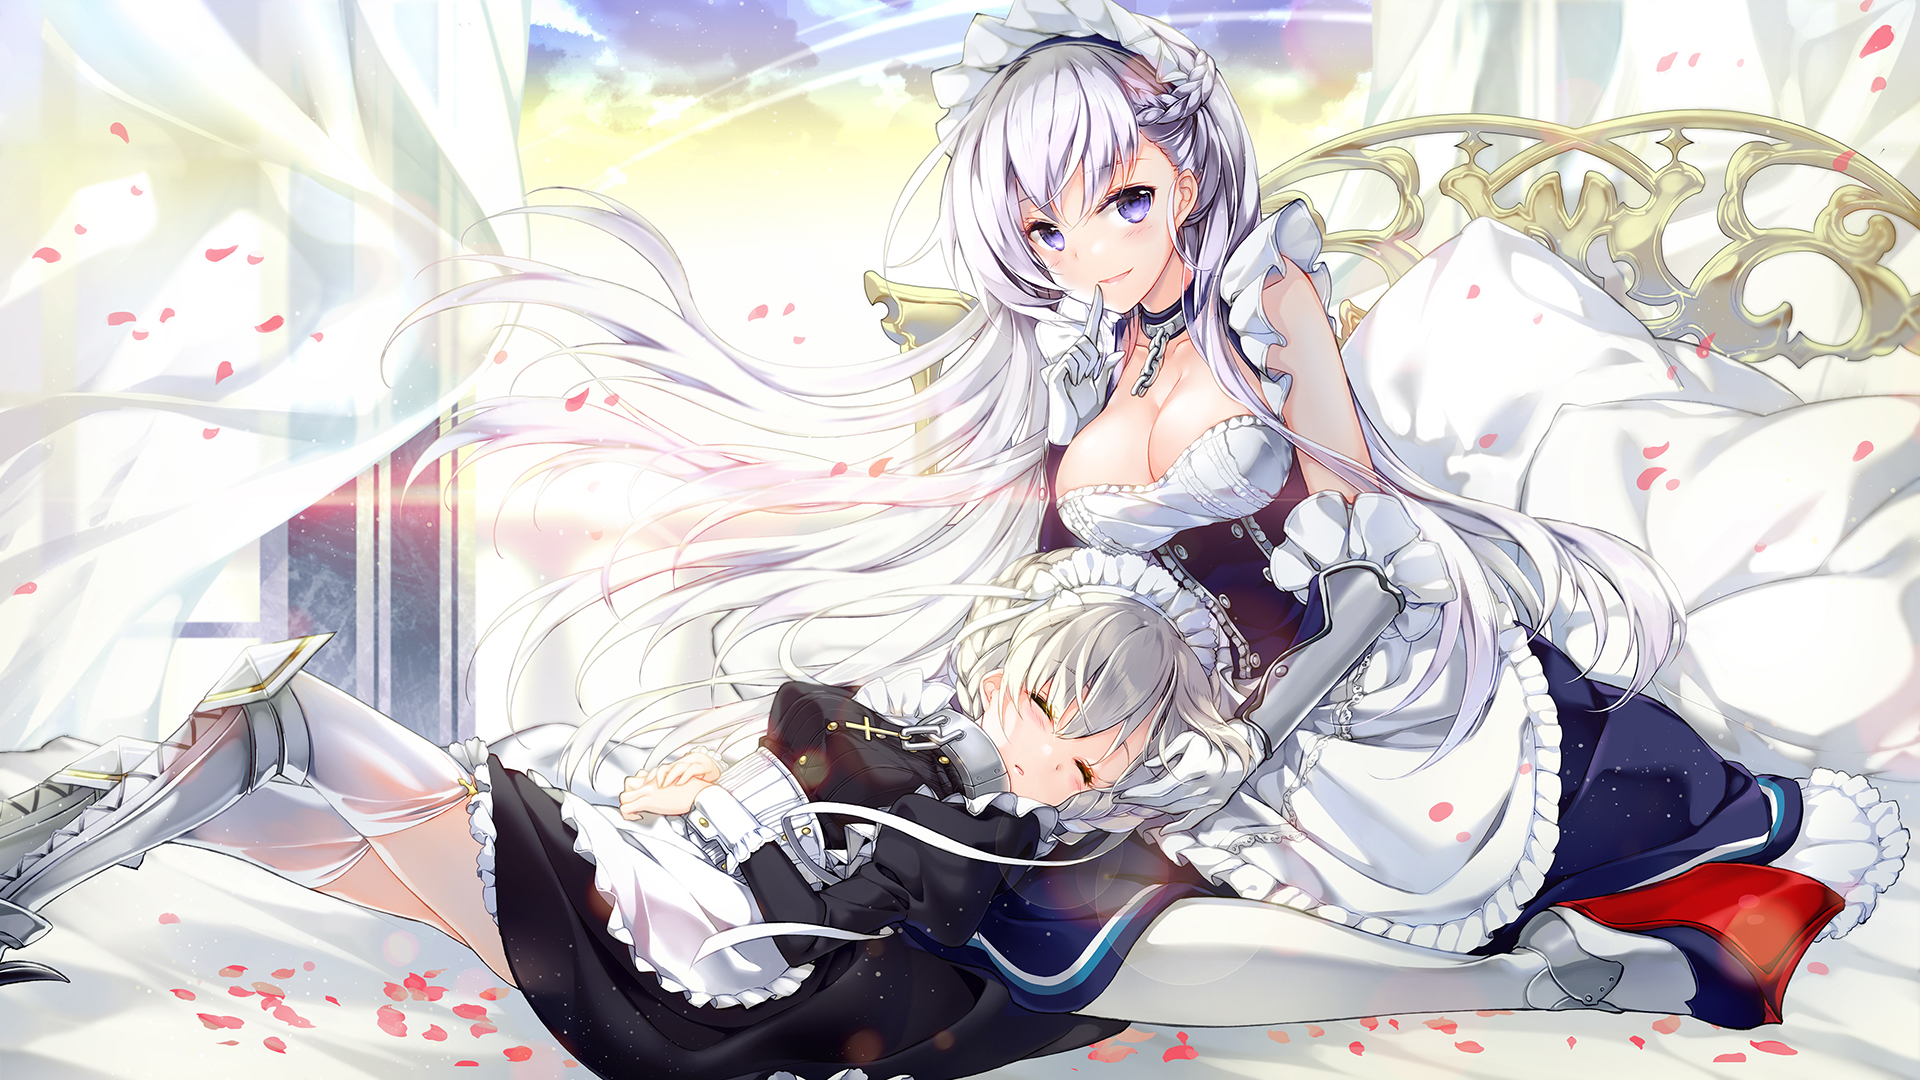 Arknights Operator Azur Lane Belfast And Enterprise Wallpaper Checkout high quality azur lane wallpapers for android, desktop / mac, laptop, smartphones and tablets with different resolutions. azur lane belfast and enterprise wallpaper